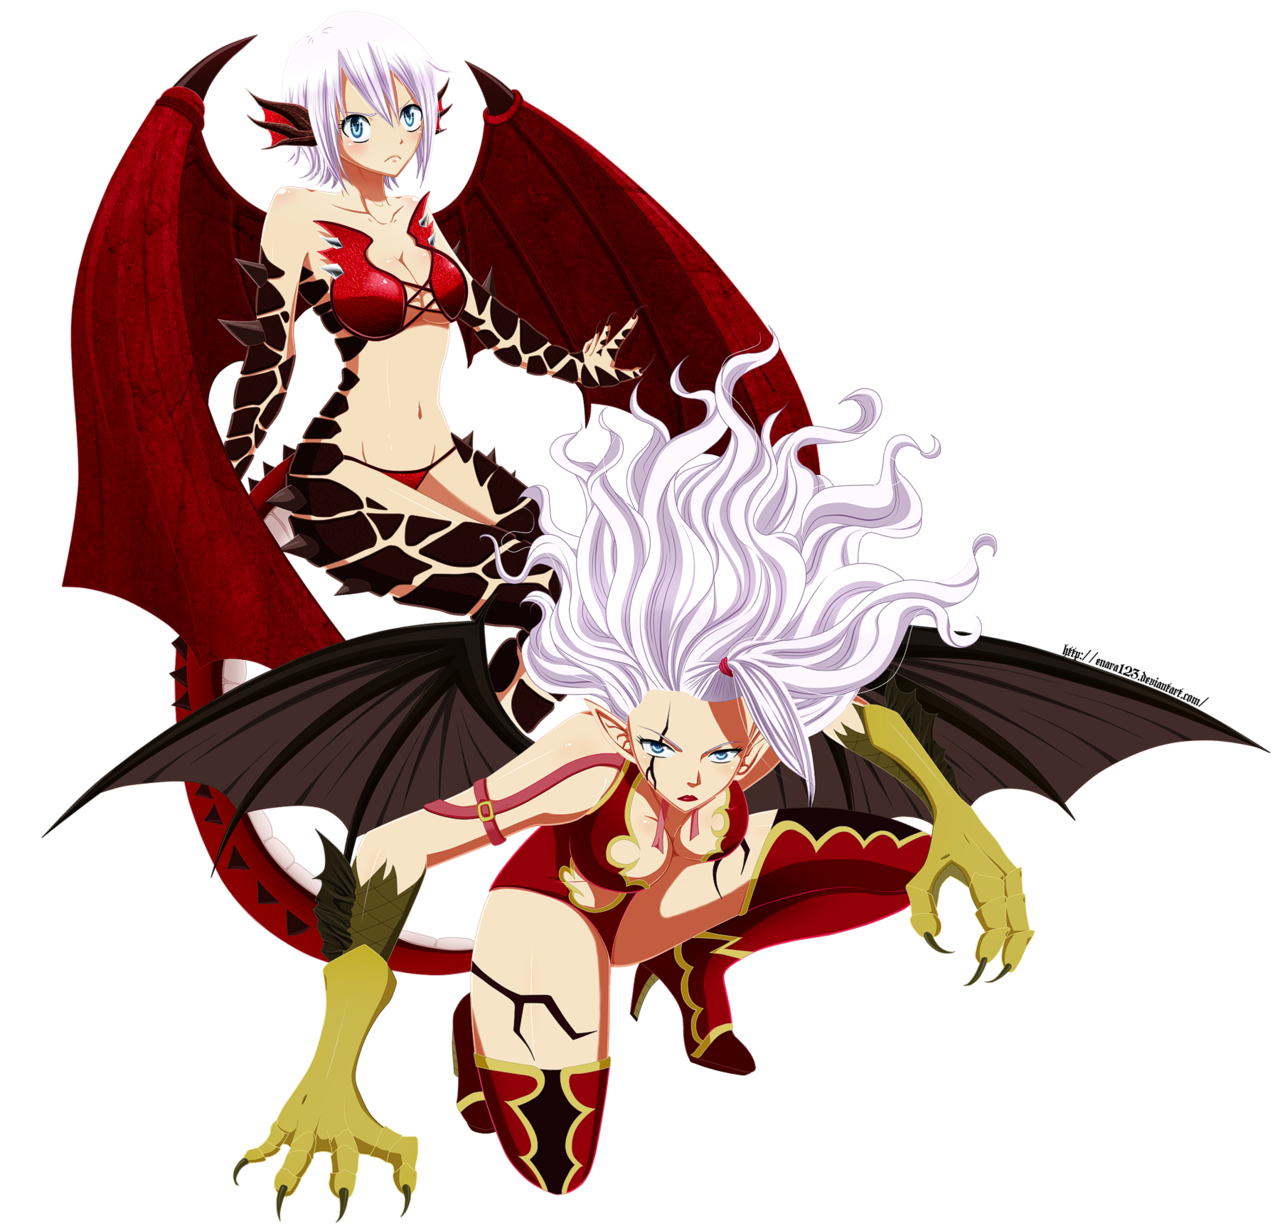 Minalouna S Art Mirajane Et Lisanna All chibi png images are displayed below available in 100% png transparent white background for browse and download free chibi asuna transparent images png transparent background image. minalouna s art blogger